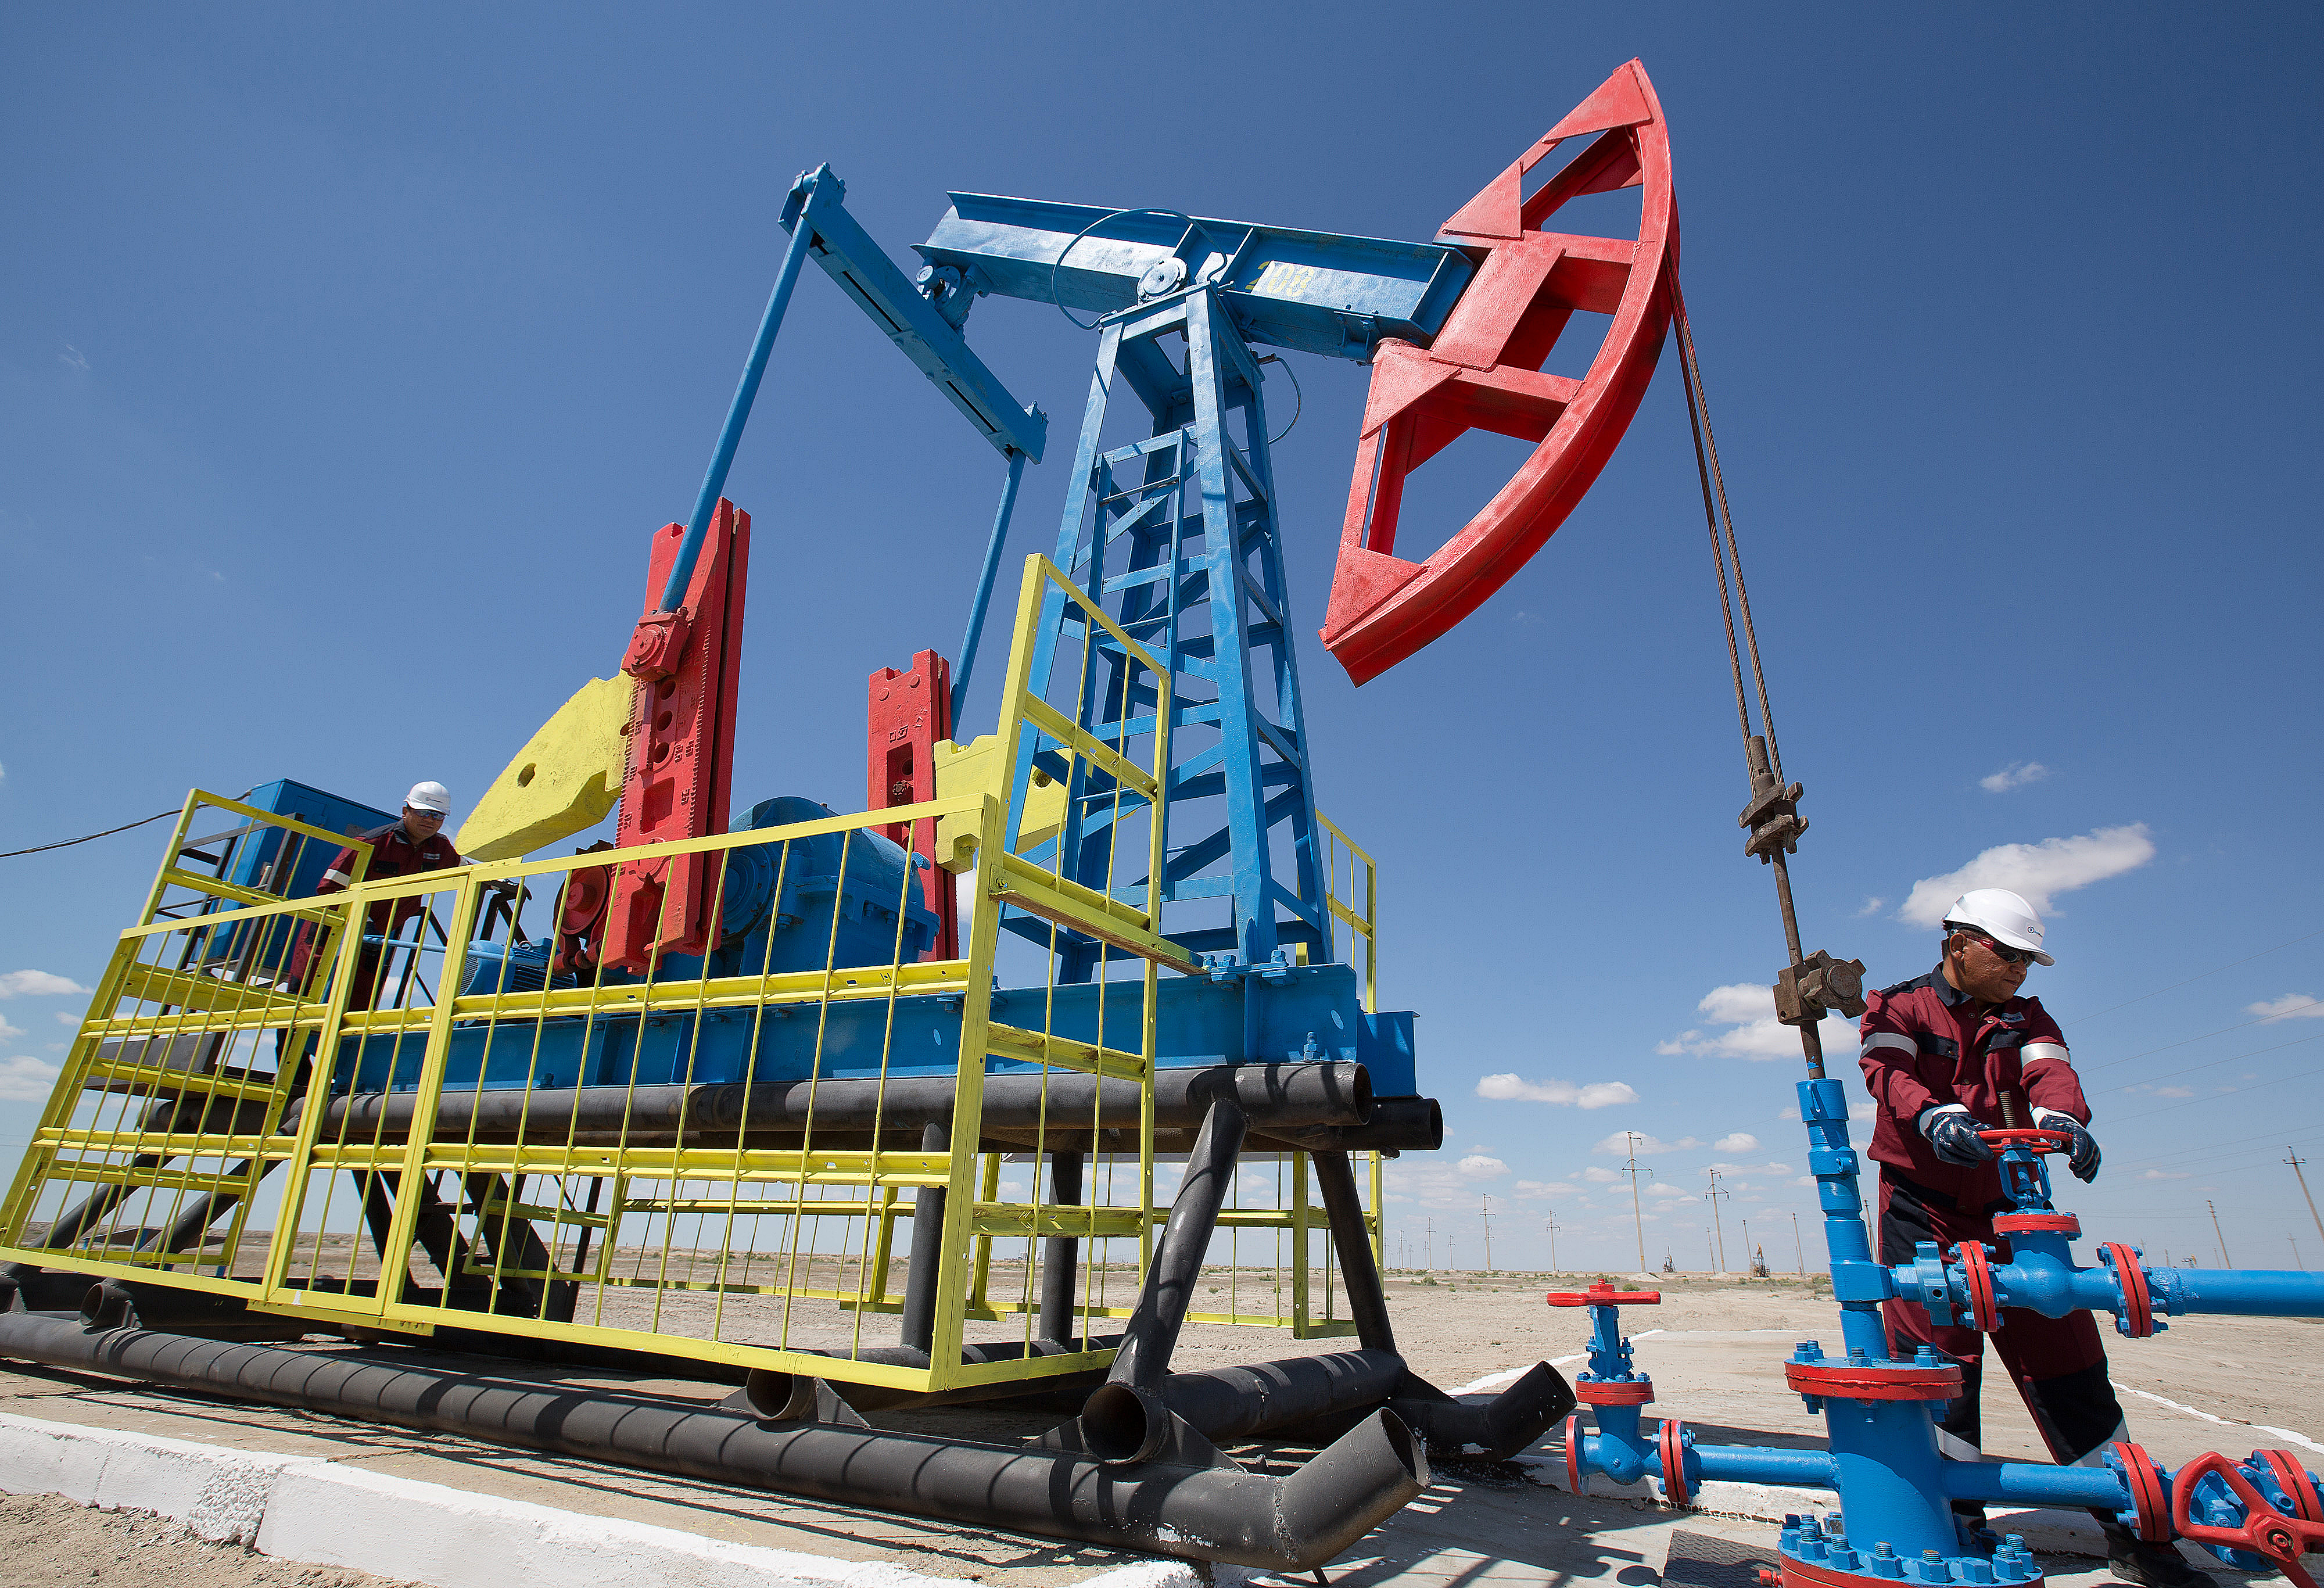 """Workers perform maintenance on an oil pumping unit, also known as a """"nodding donkey"""" at an oilfield operated by Embamunaigas, a unit of KazMunaiGas Exploration Production, in Akkystau village, near Atyrau, Kazakhstan, on Saturday, July 4, 2015. The majority Muslim country is central Asia's biggest oil producer. Photographer: Andrey Rudakov/Bloomberg"""